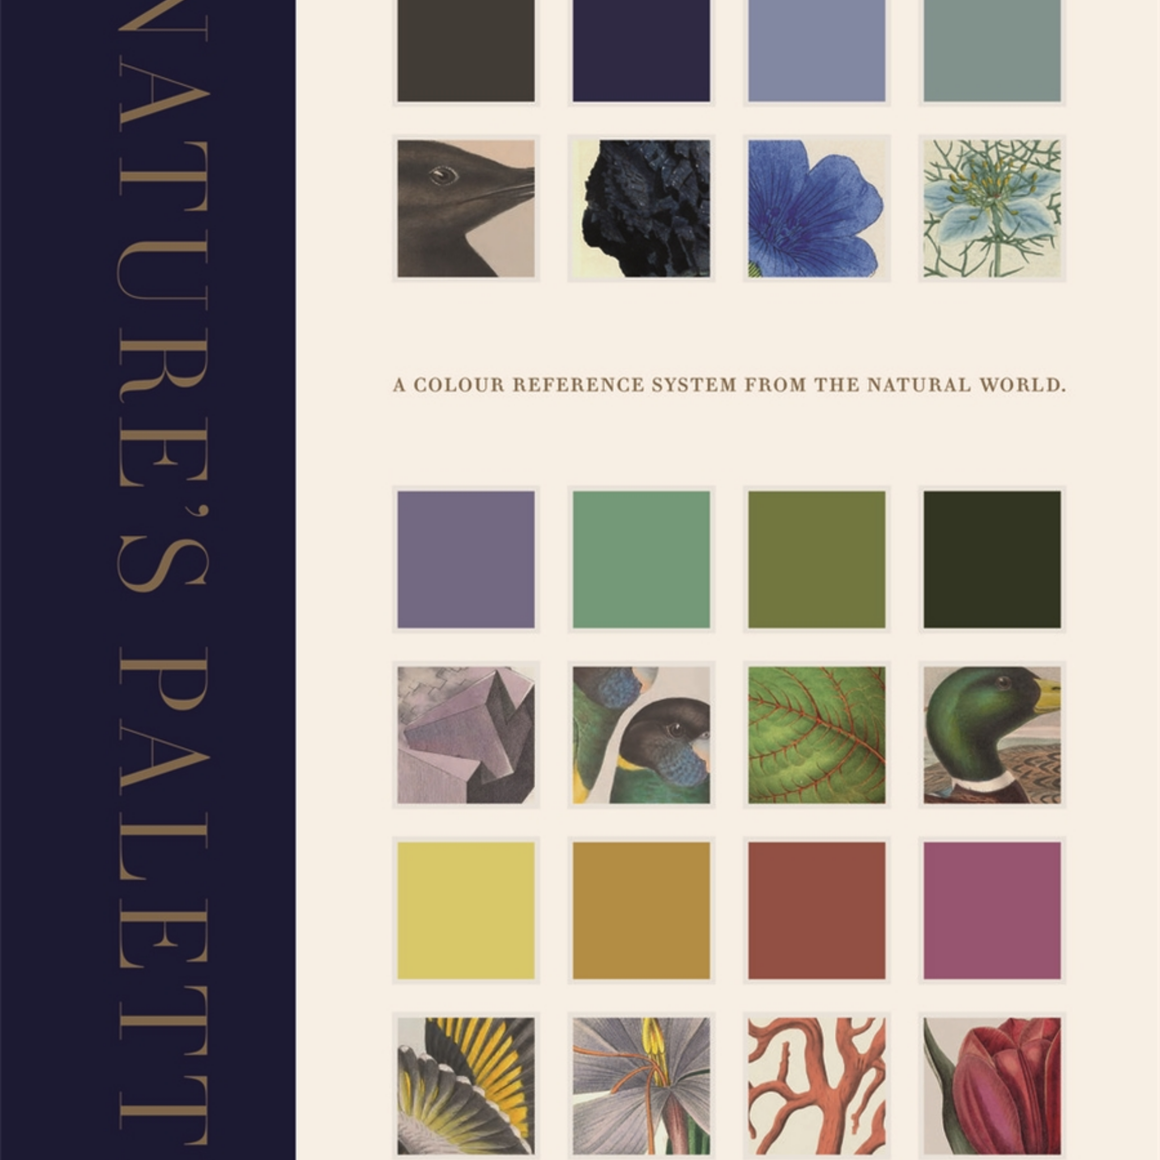 NATURE'S PALETTE - A COLOUR REFERENCE SYSTEM FROM THE NATURAL WORLD